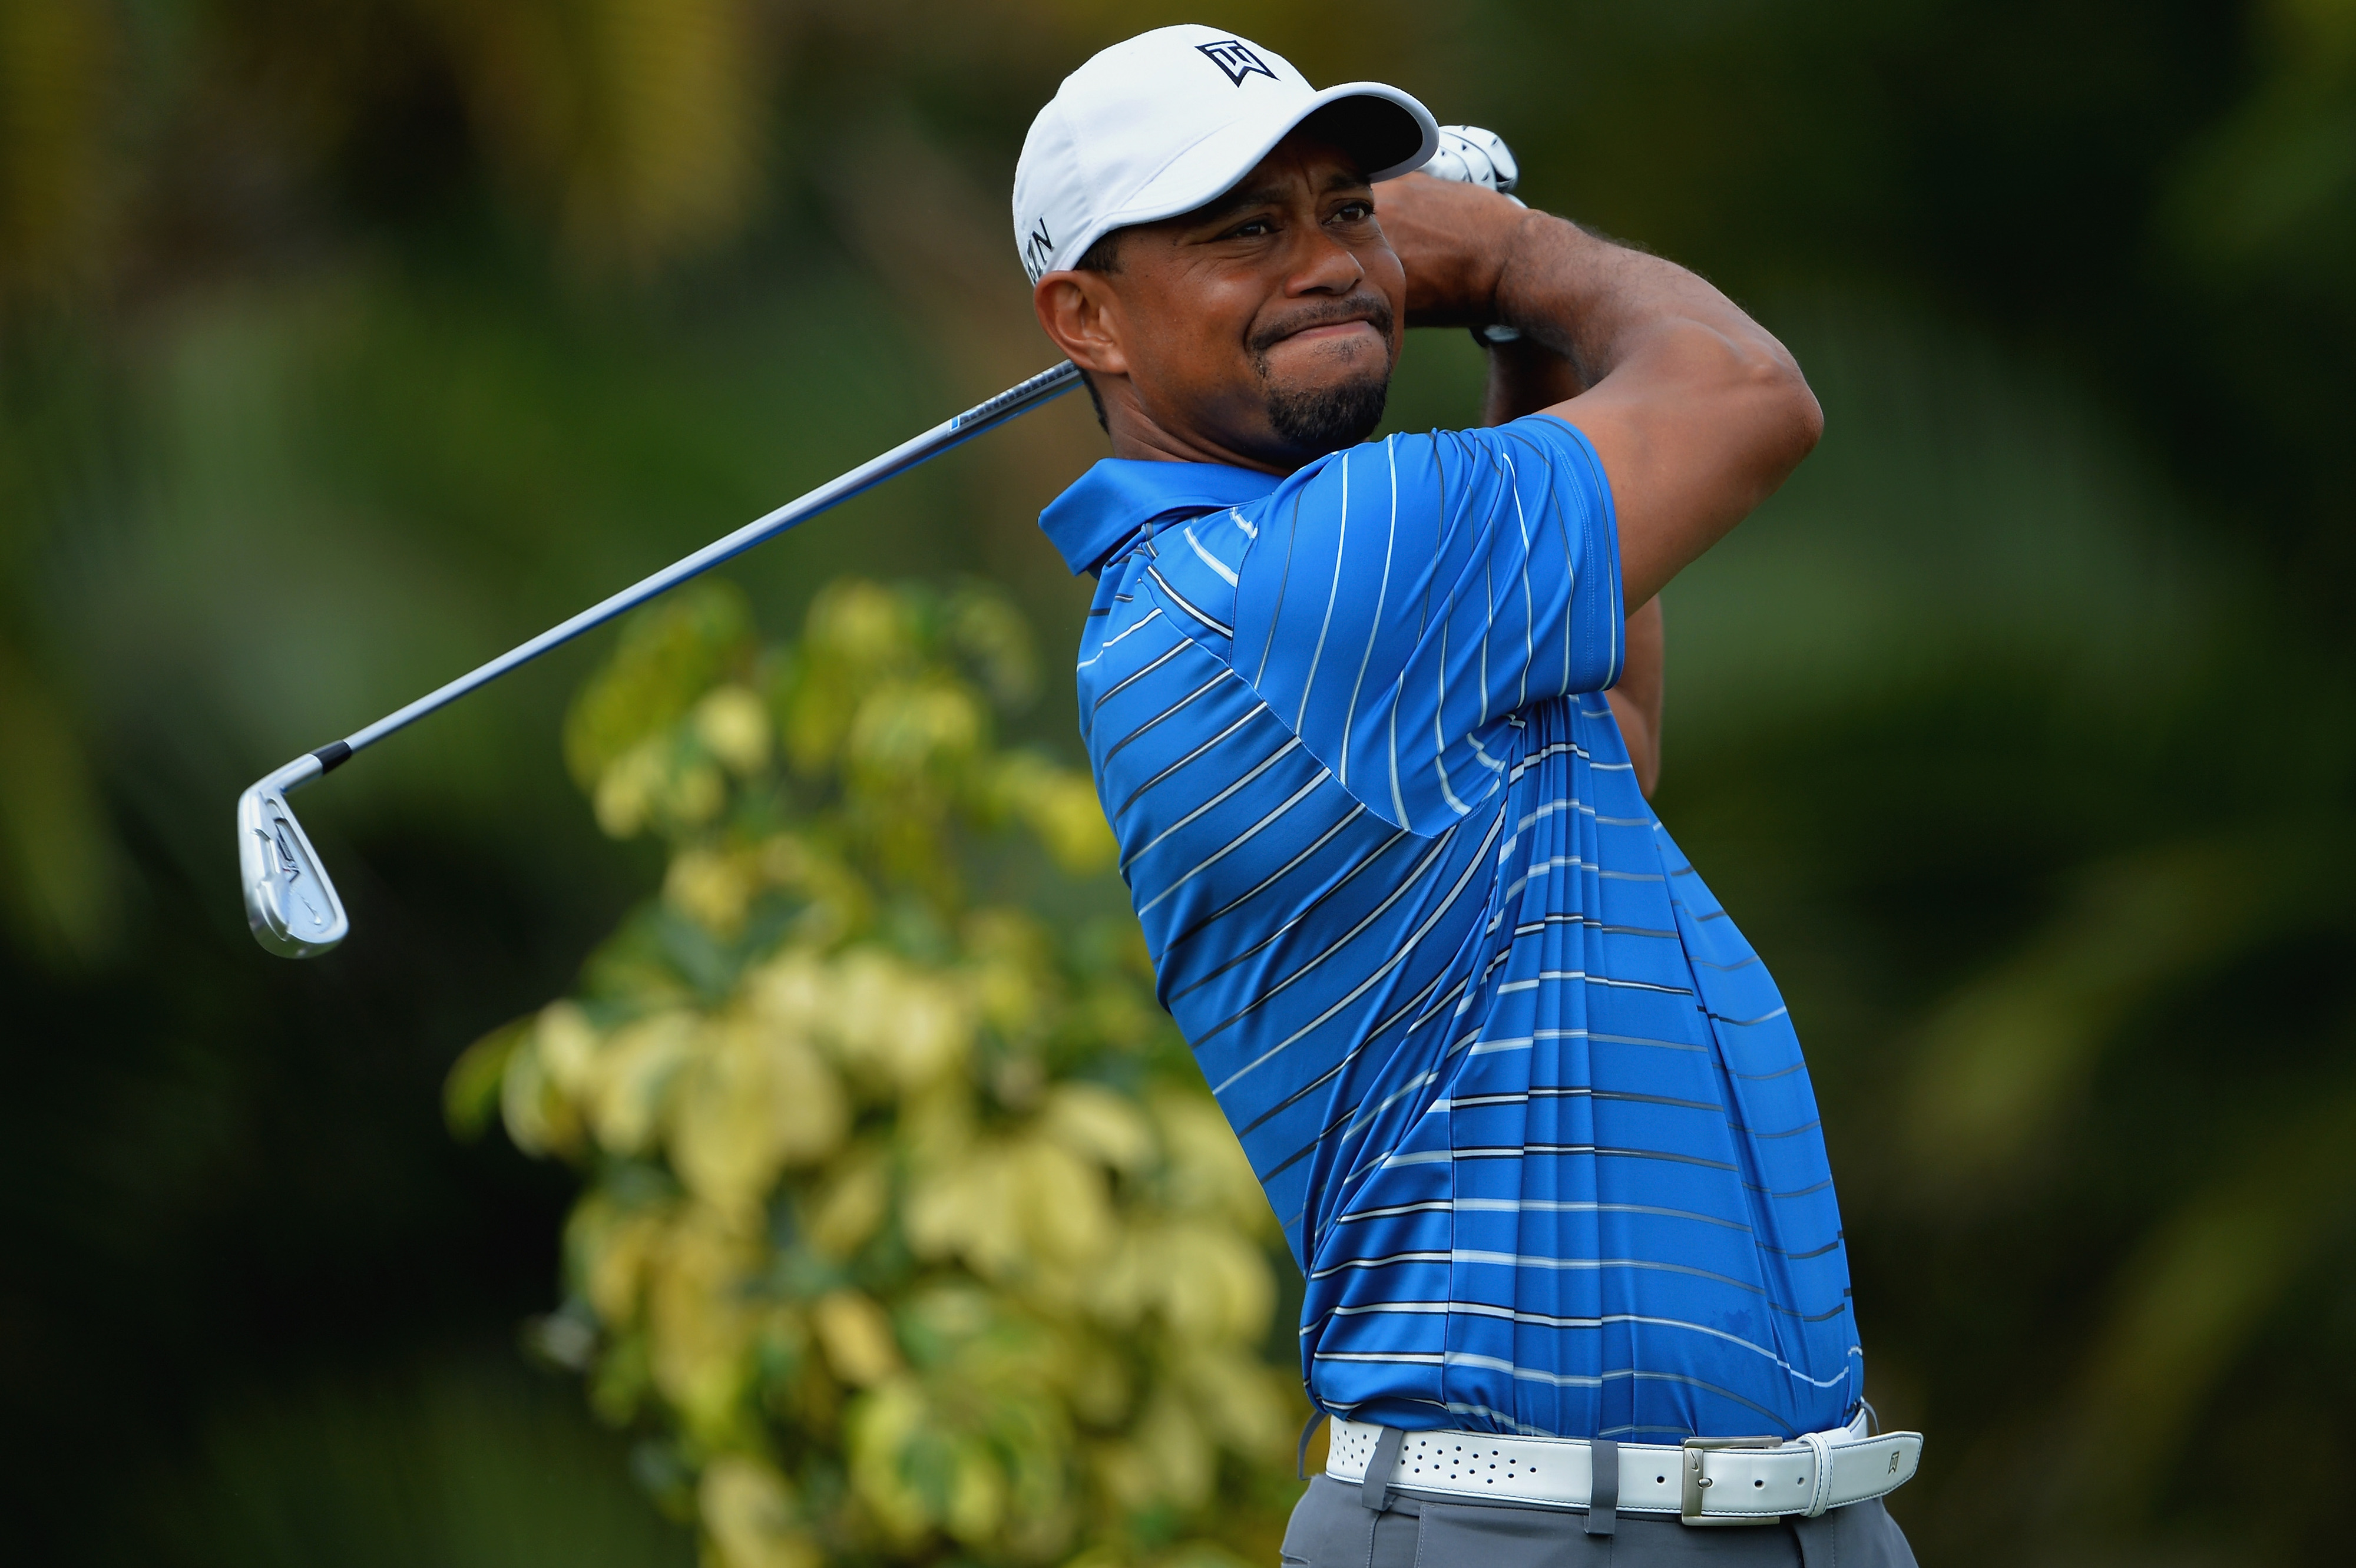 Tiger Woods may shake up his pre-Masters schedule